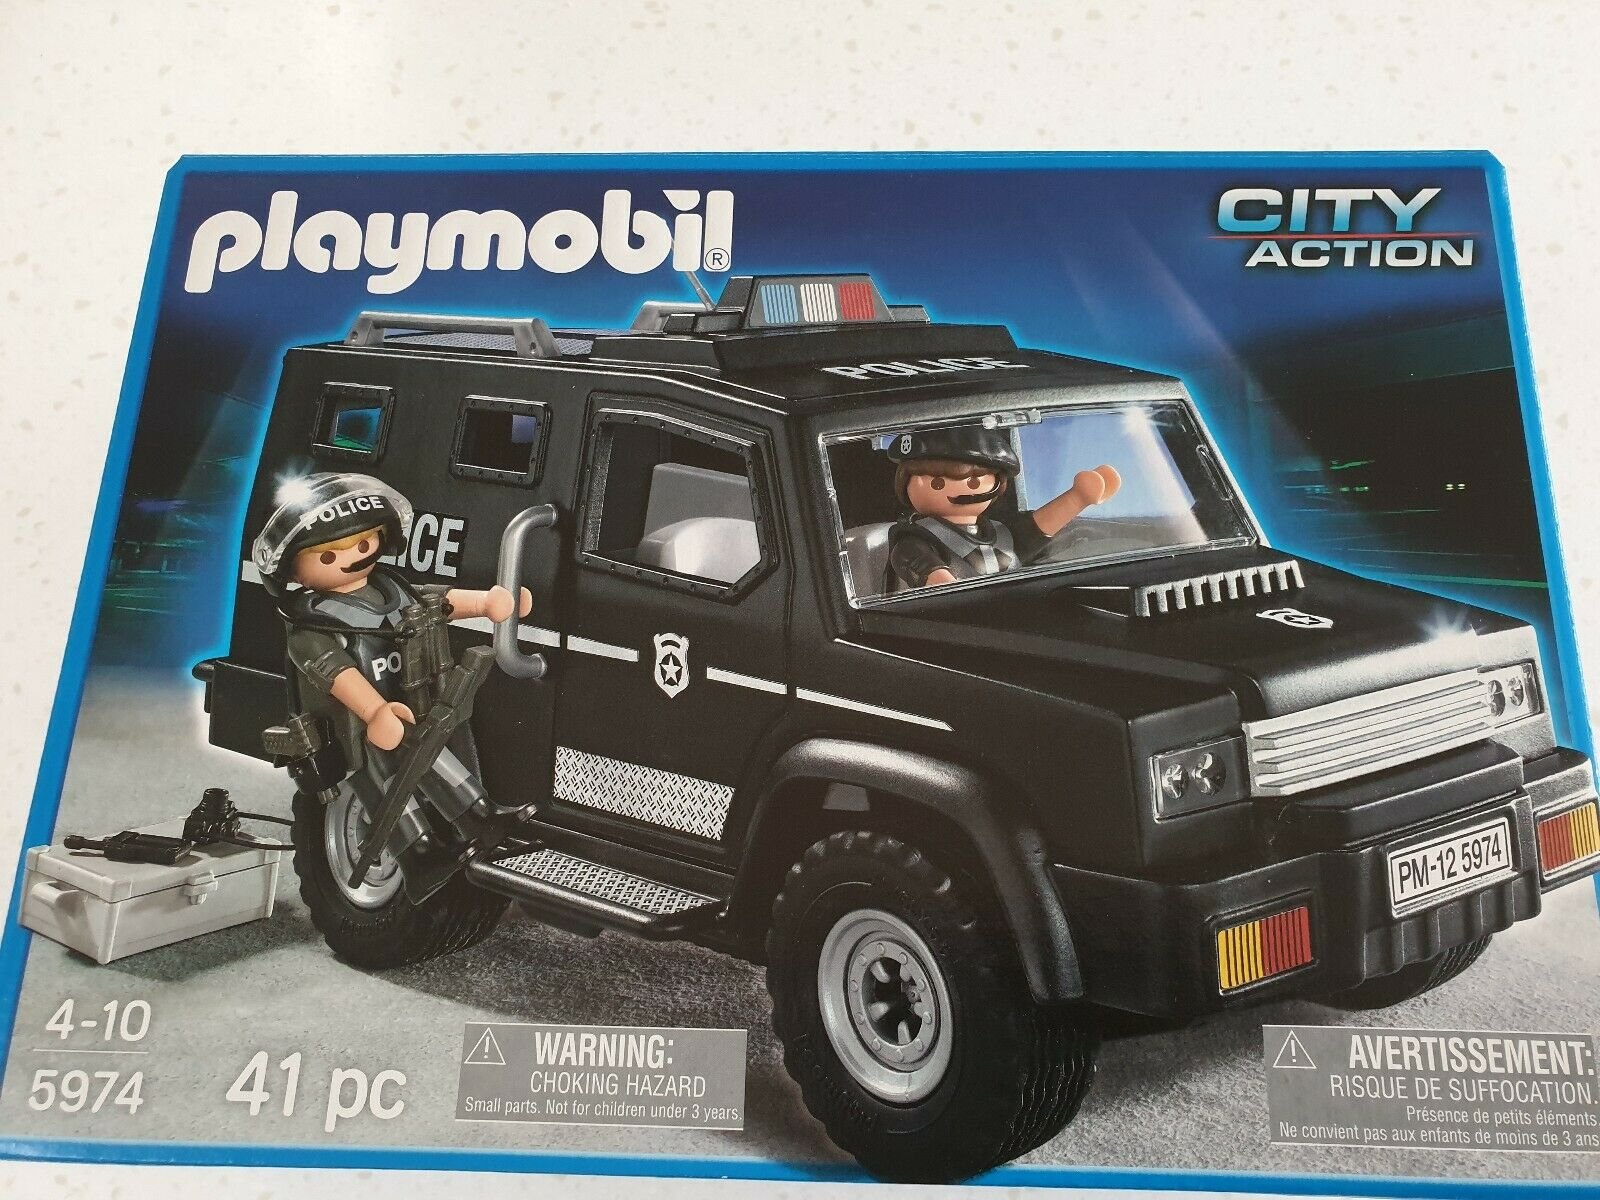 Playmobil 5974 City Action Police Car Truck accessories BNIB